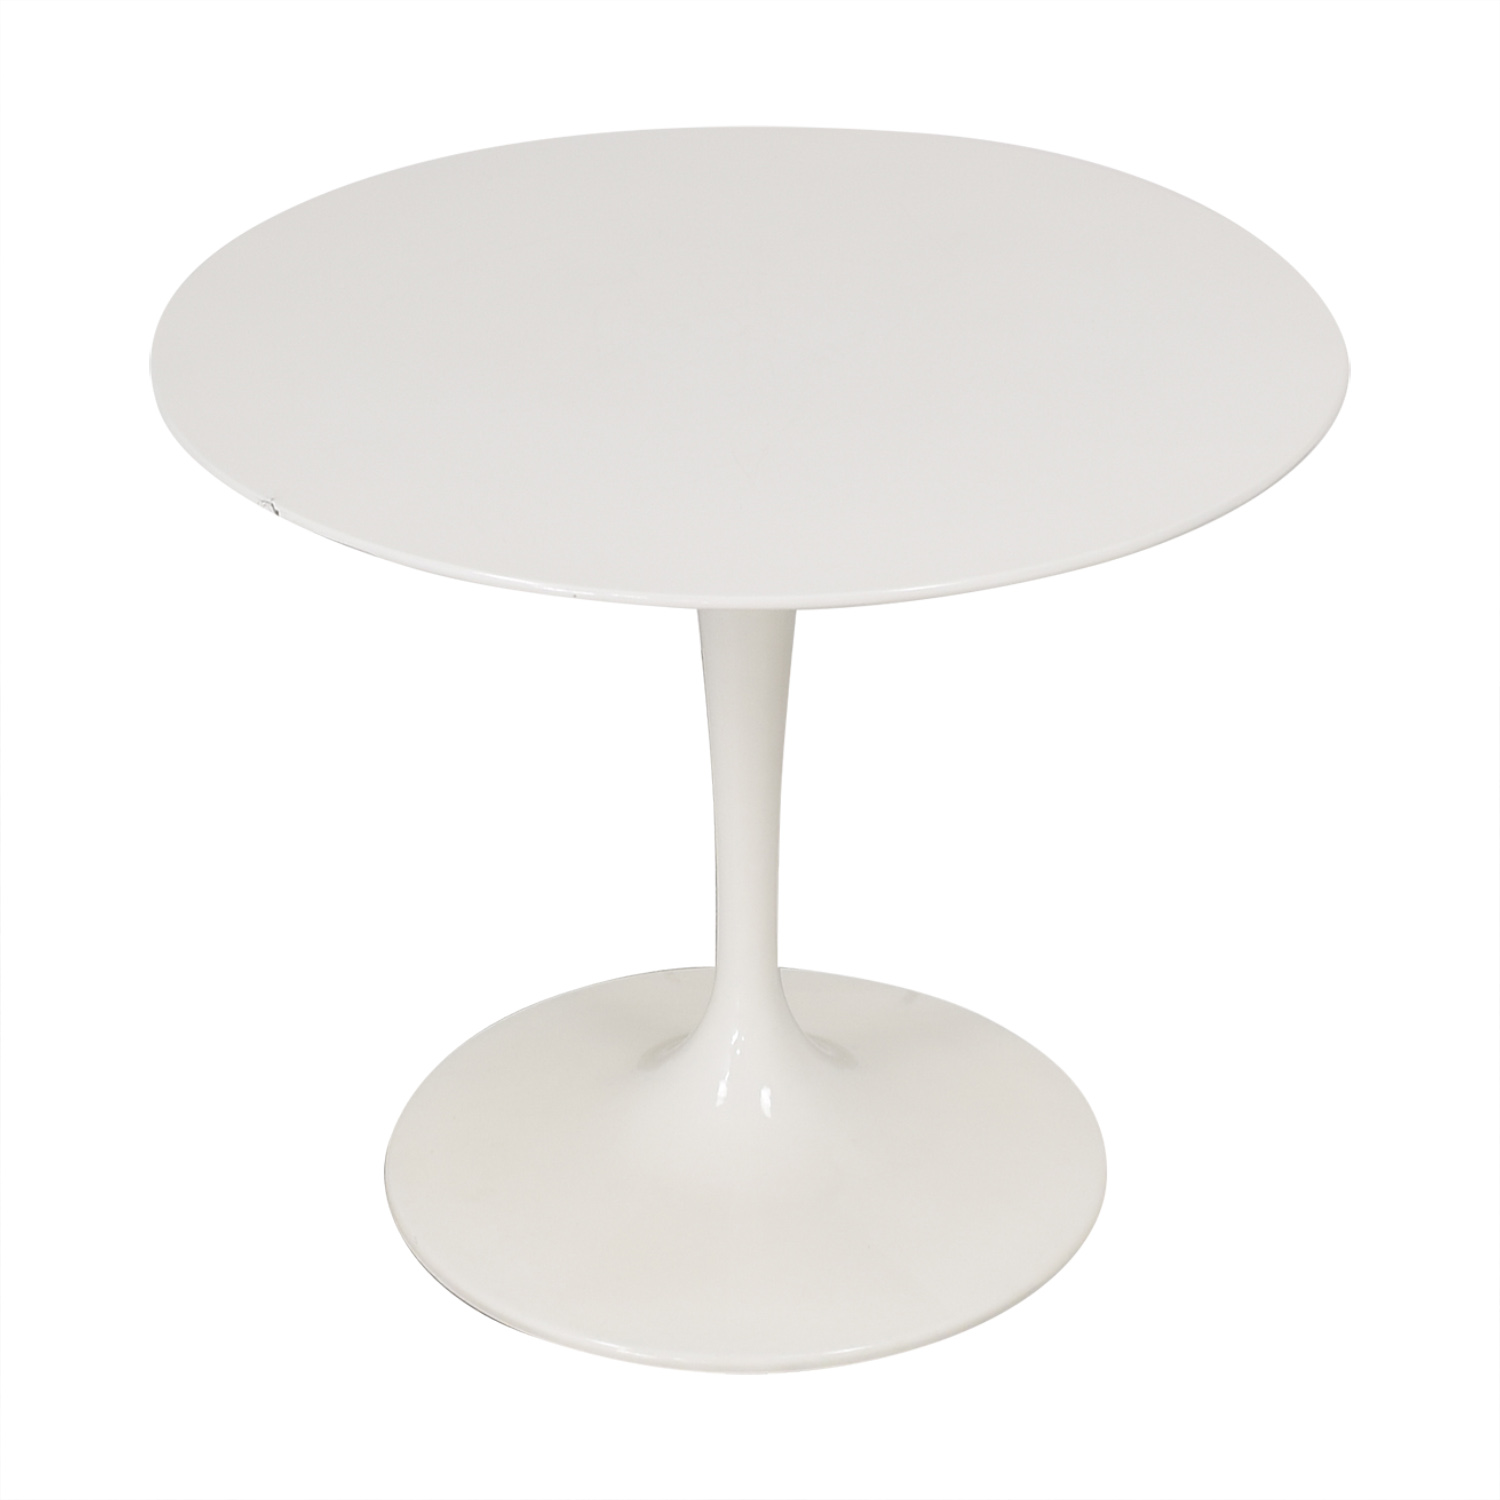 Manhattan Home Design Manhattan Home Design Tulip Dining Table coupon